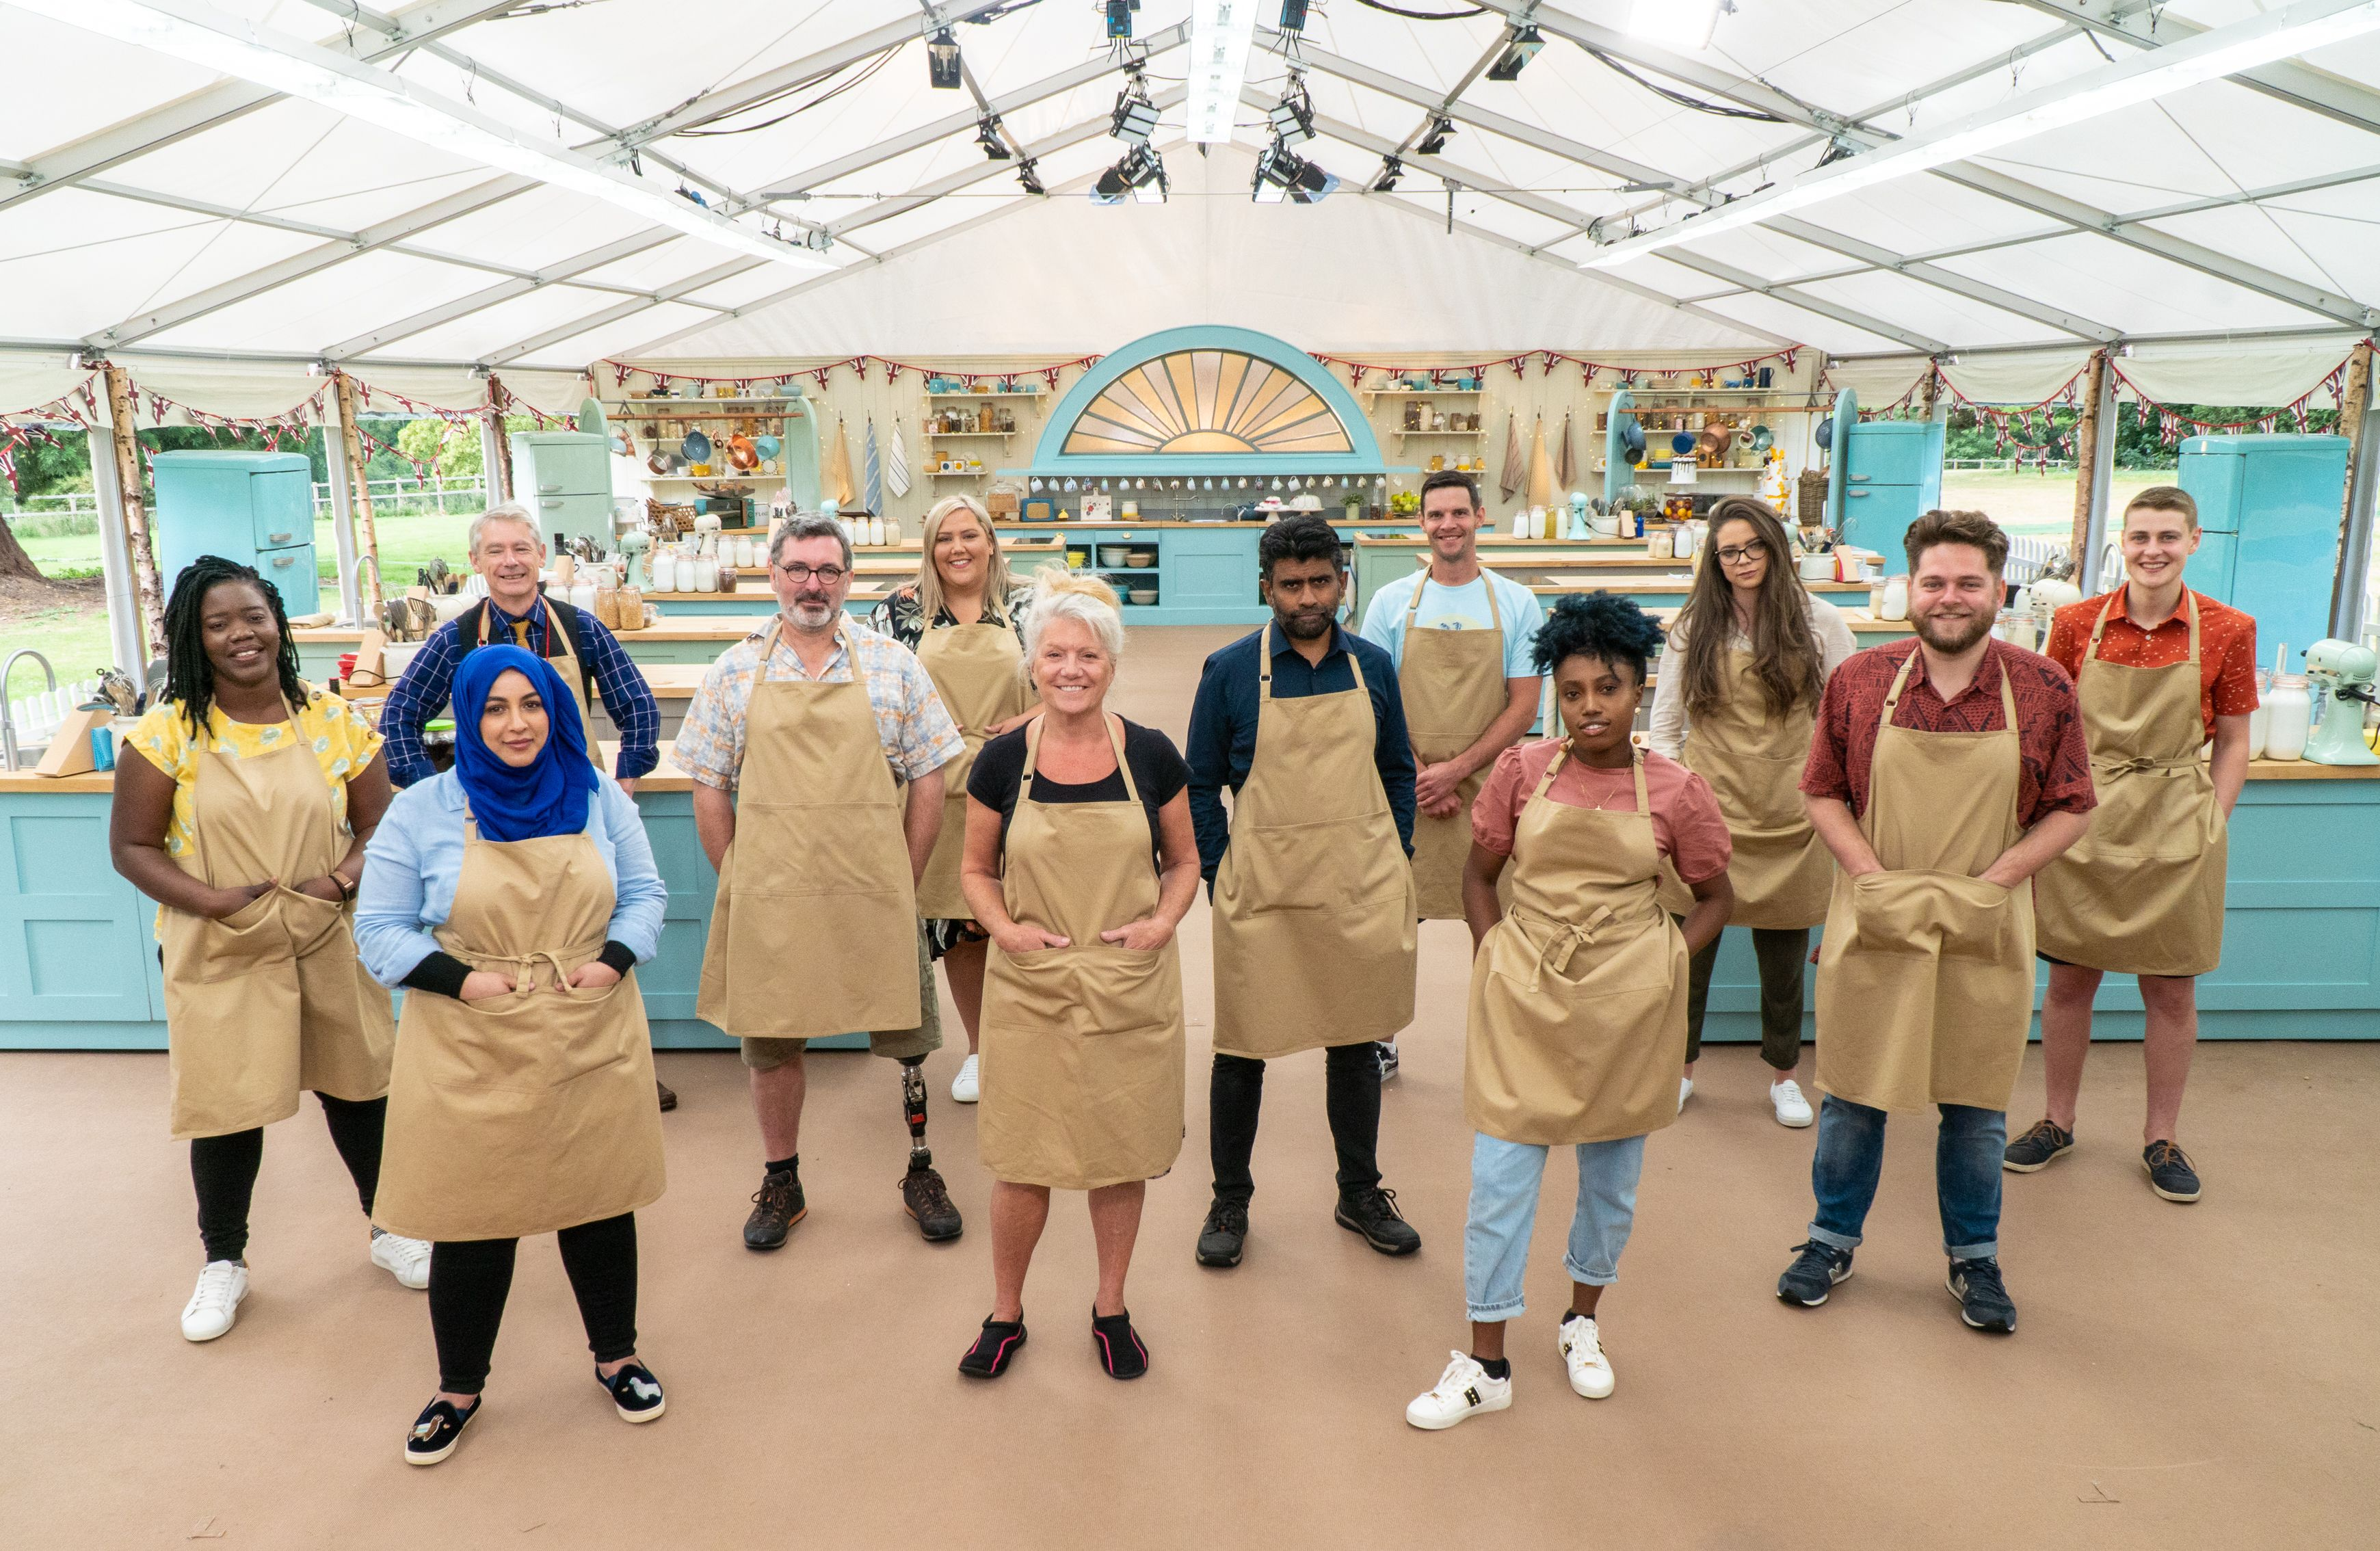 The Great British Baking Show' Cast 2020 | Meet the Bakers of Season 11